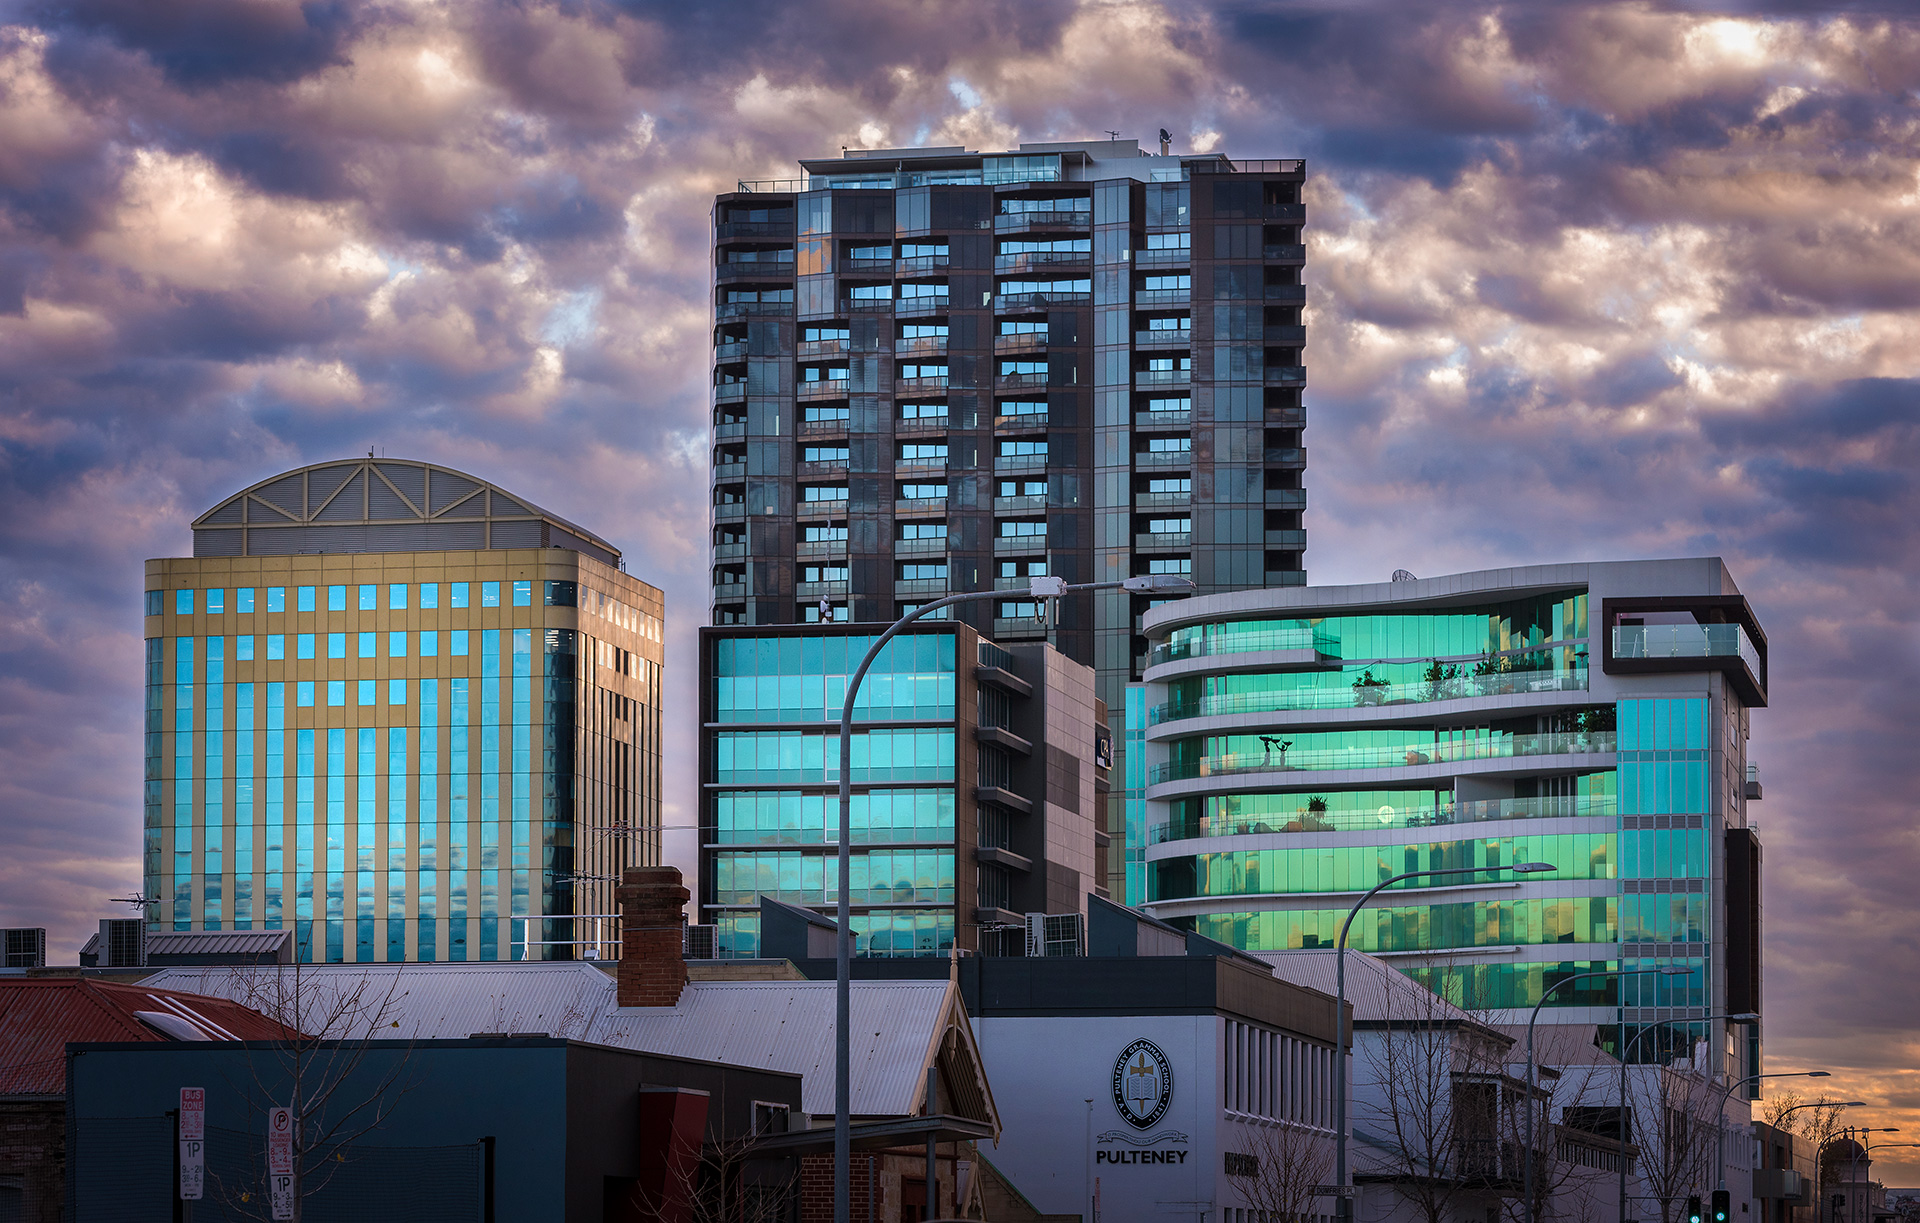 Architecture Skyline Photography Adelaide